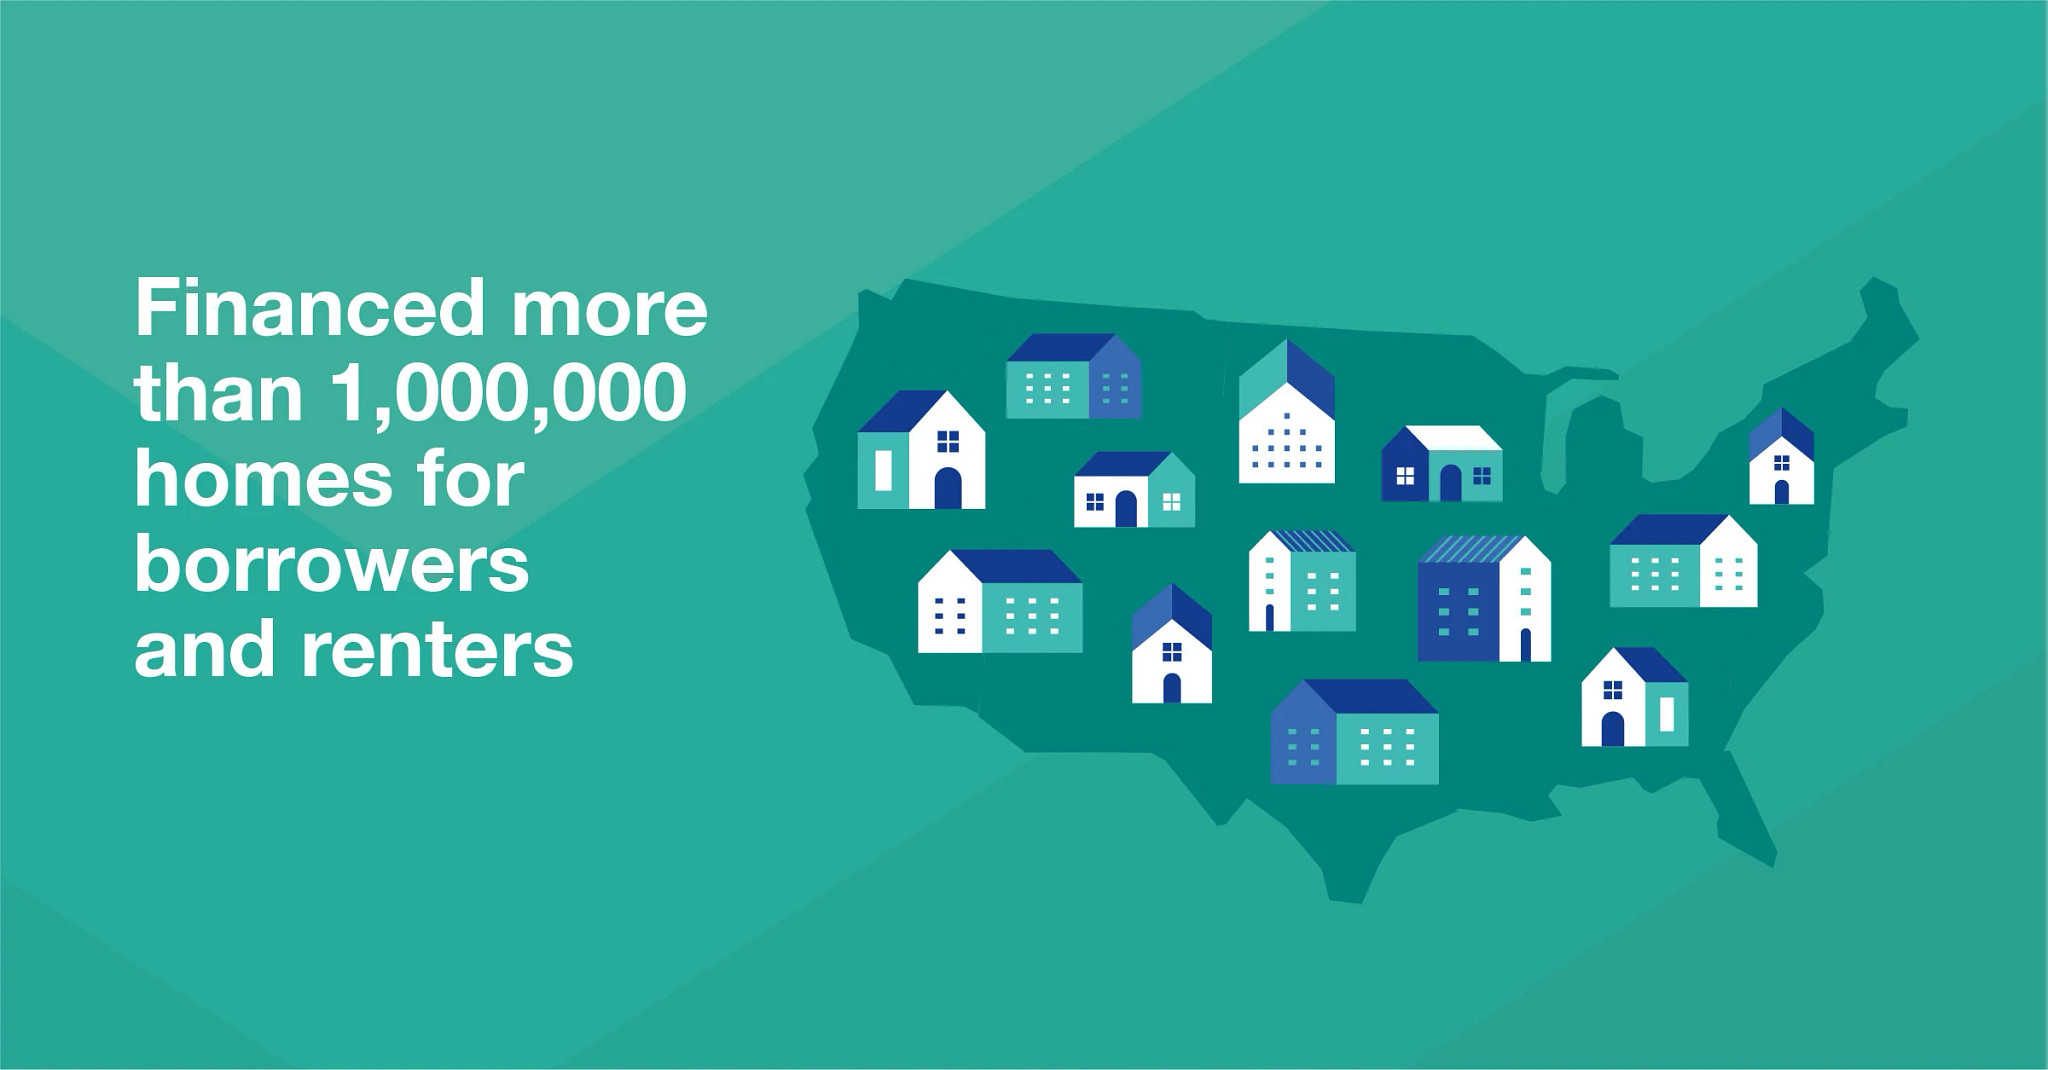 Financed more than 1,000,000 homes for borrowers and renters.